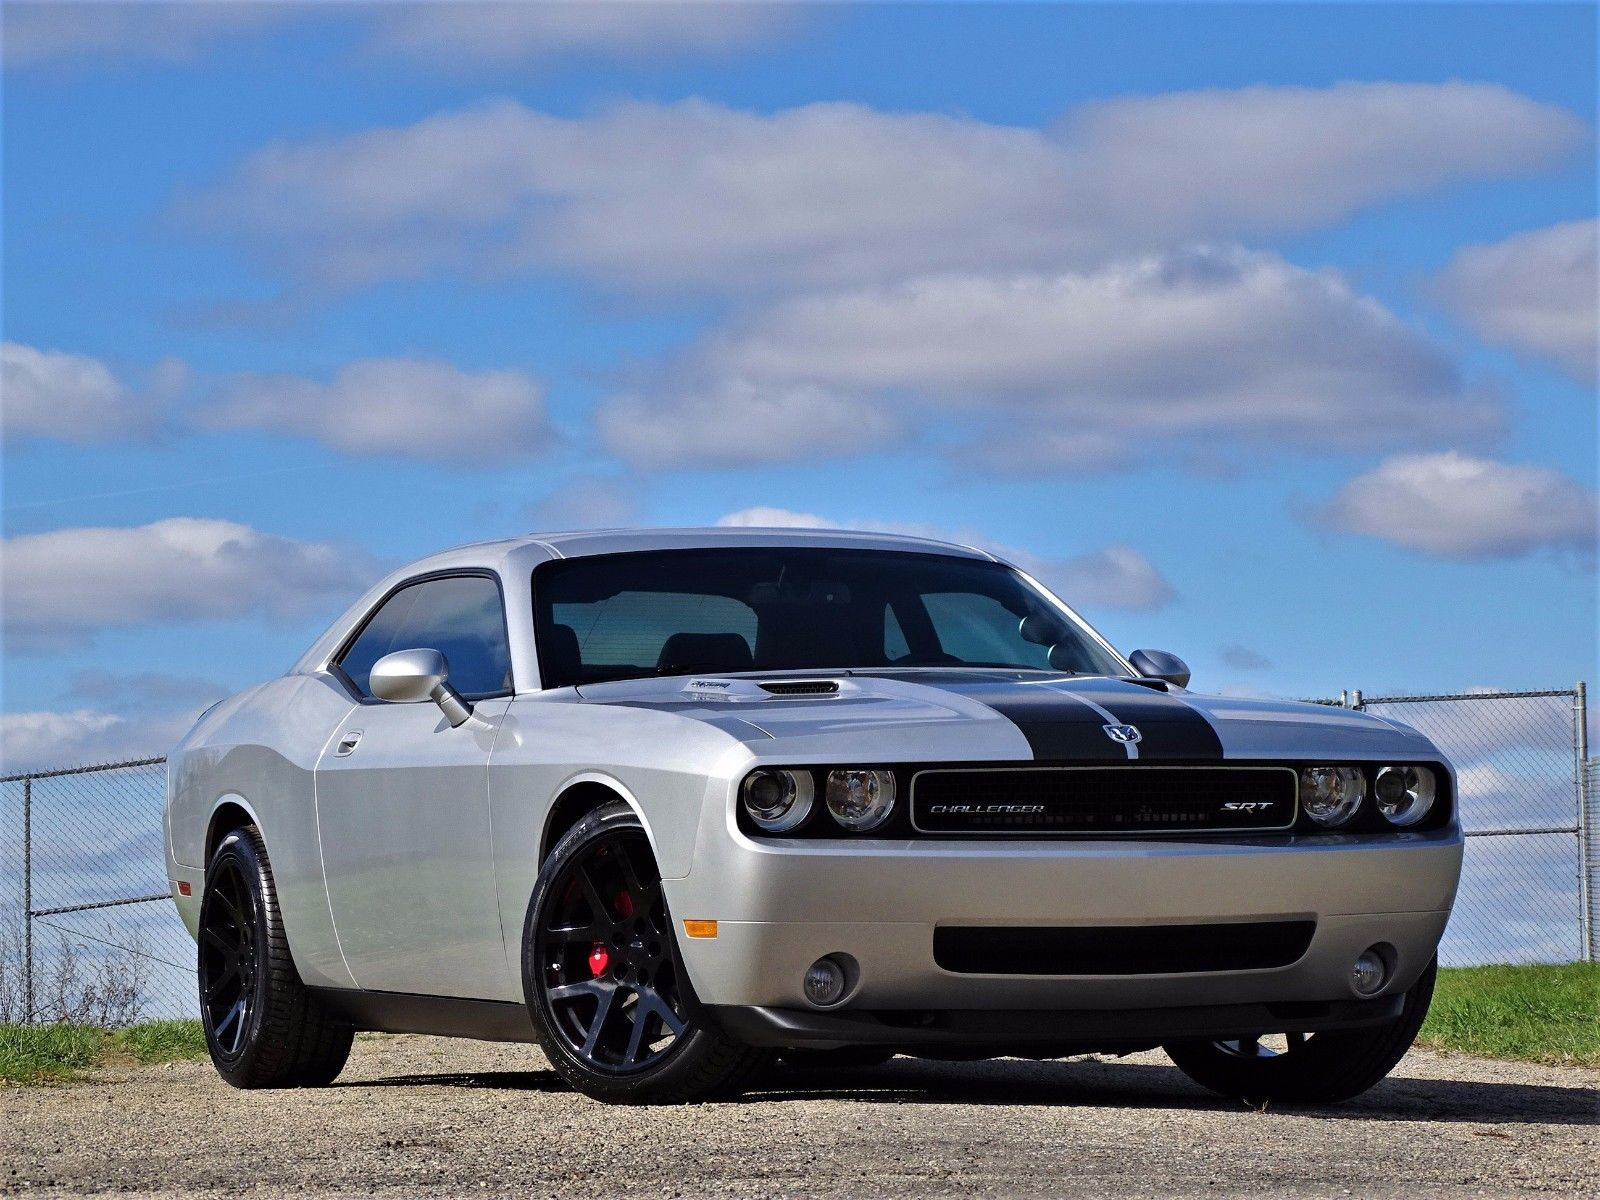 great 2010 dodge challenger srt8 rt8 magna supercharger 6 1l hemi v8 6 speed 500hp corsa exhaust. Black Bedroom Furniture Sets. Home Design Ideas